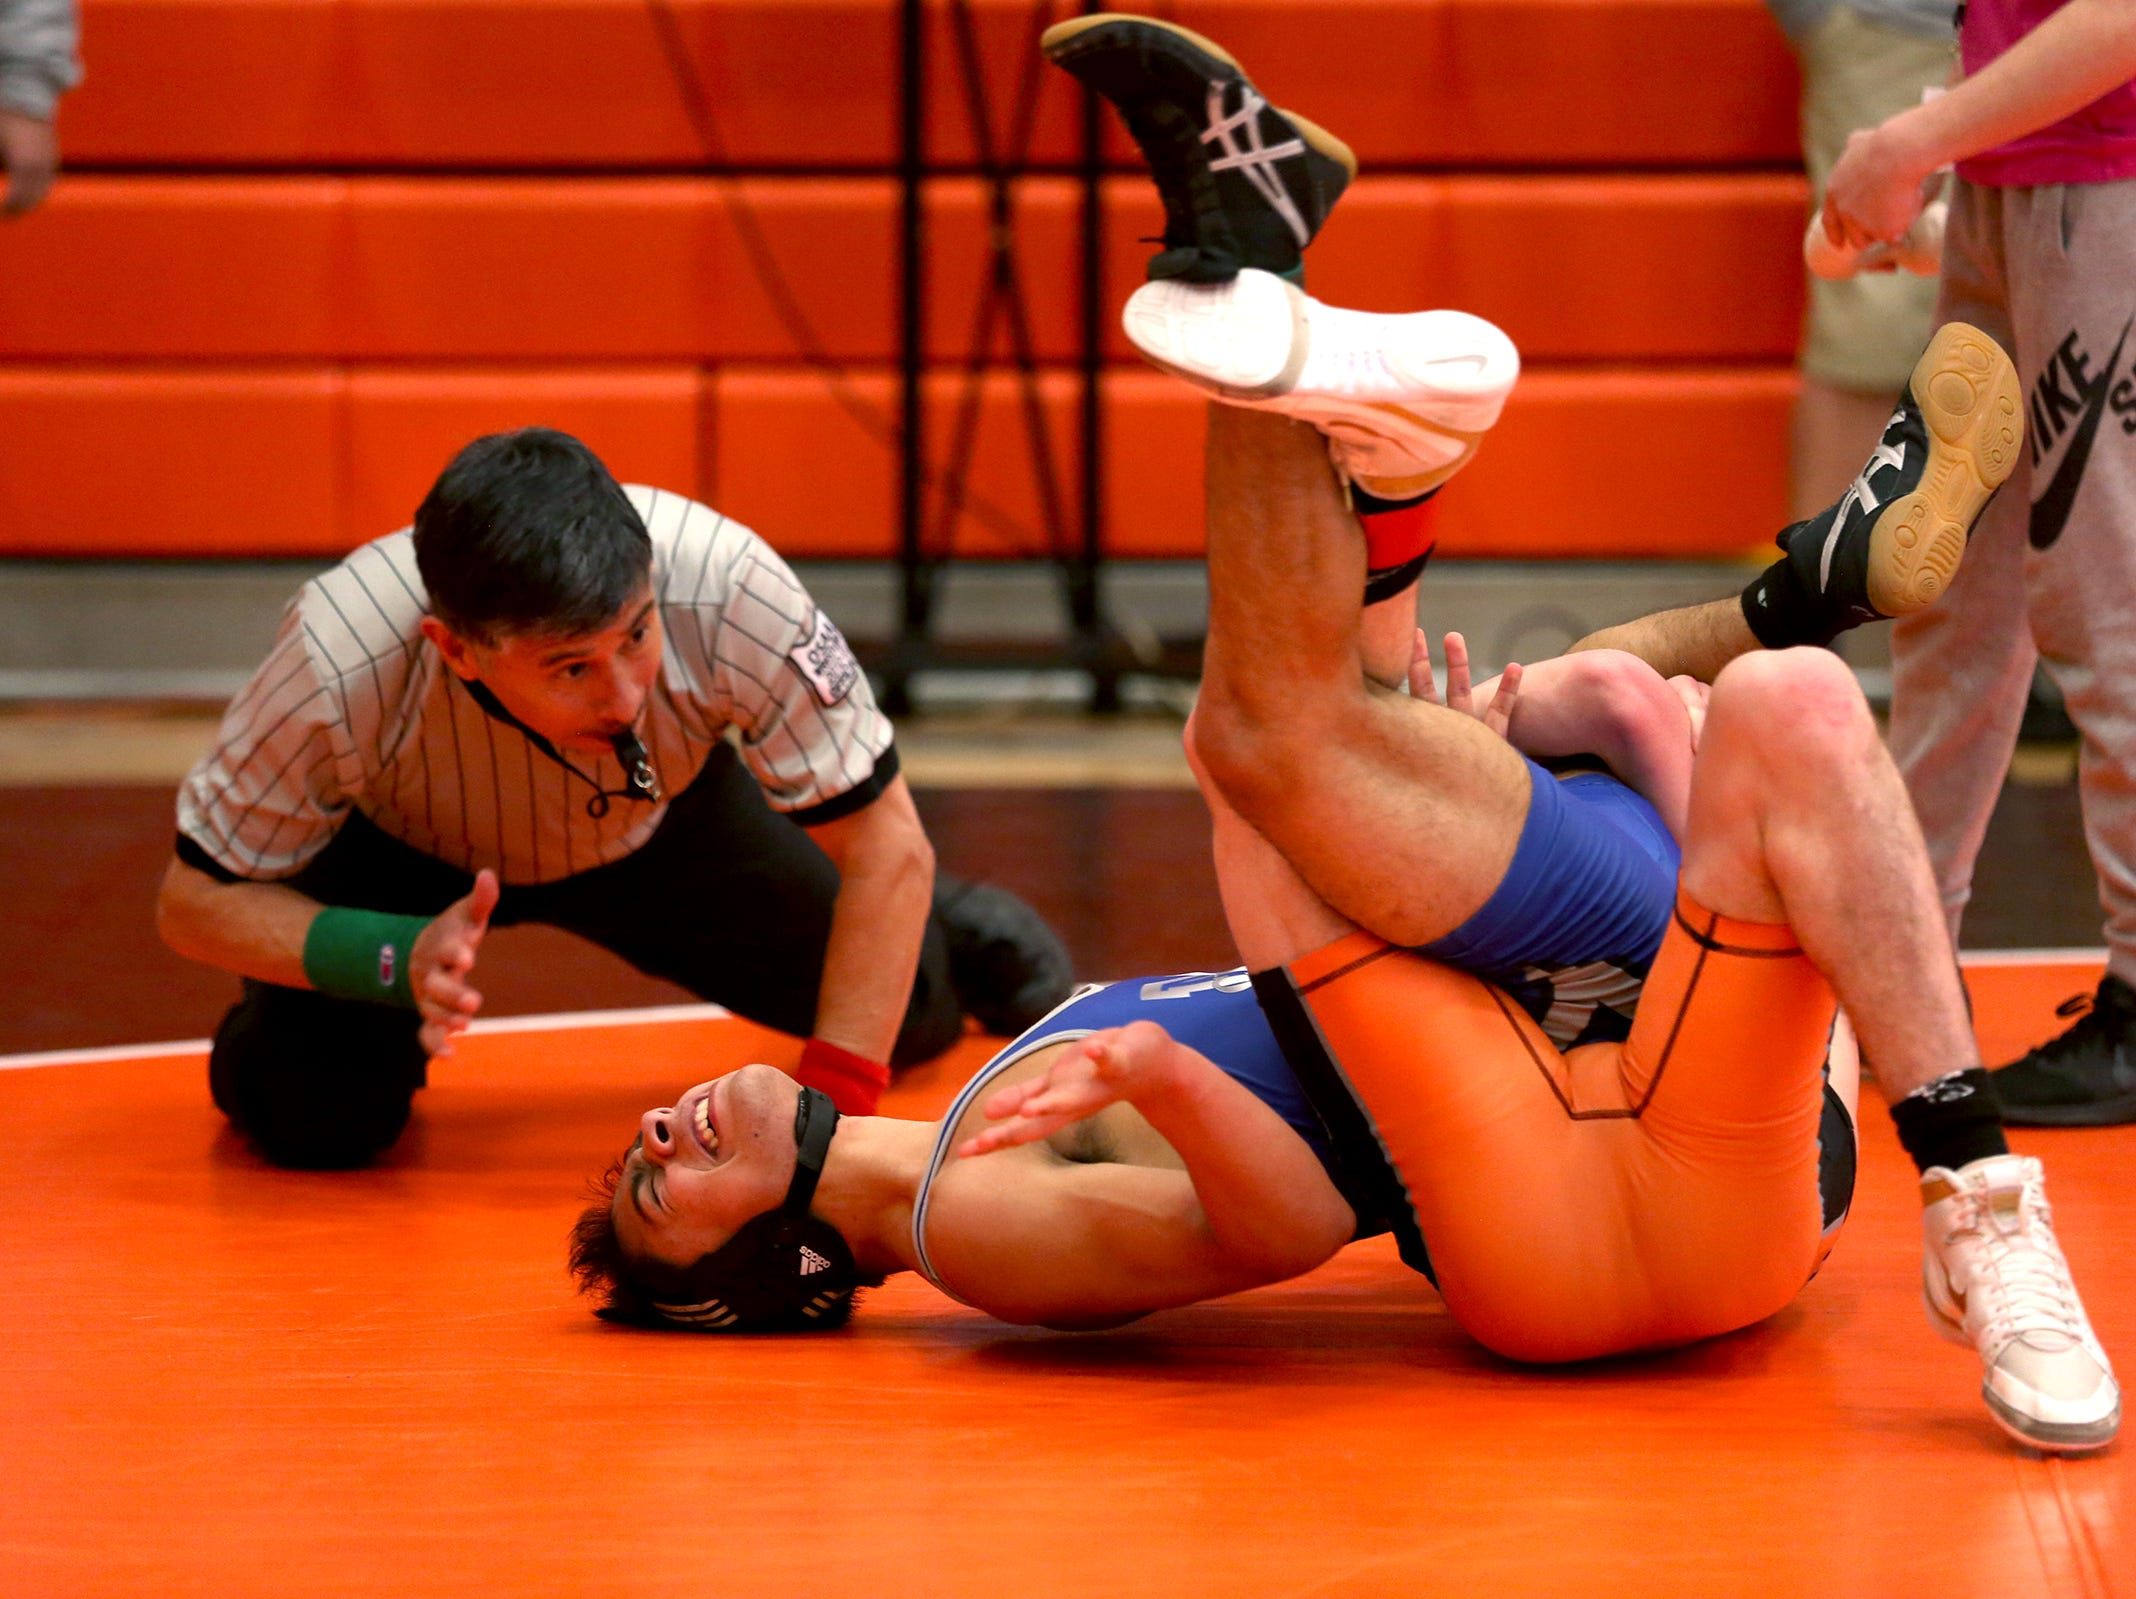 Sprague's Brock McMullen takes control over McNary's Esteban Victoria as they compete in the 132 pound weight class during the Mountain Valley Conference district wrestling tournament at Sprague High School in Salem on Friday, Feb. 15, 2019.